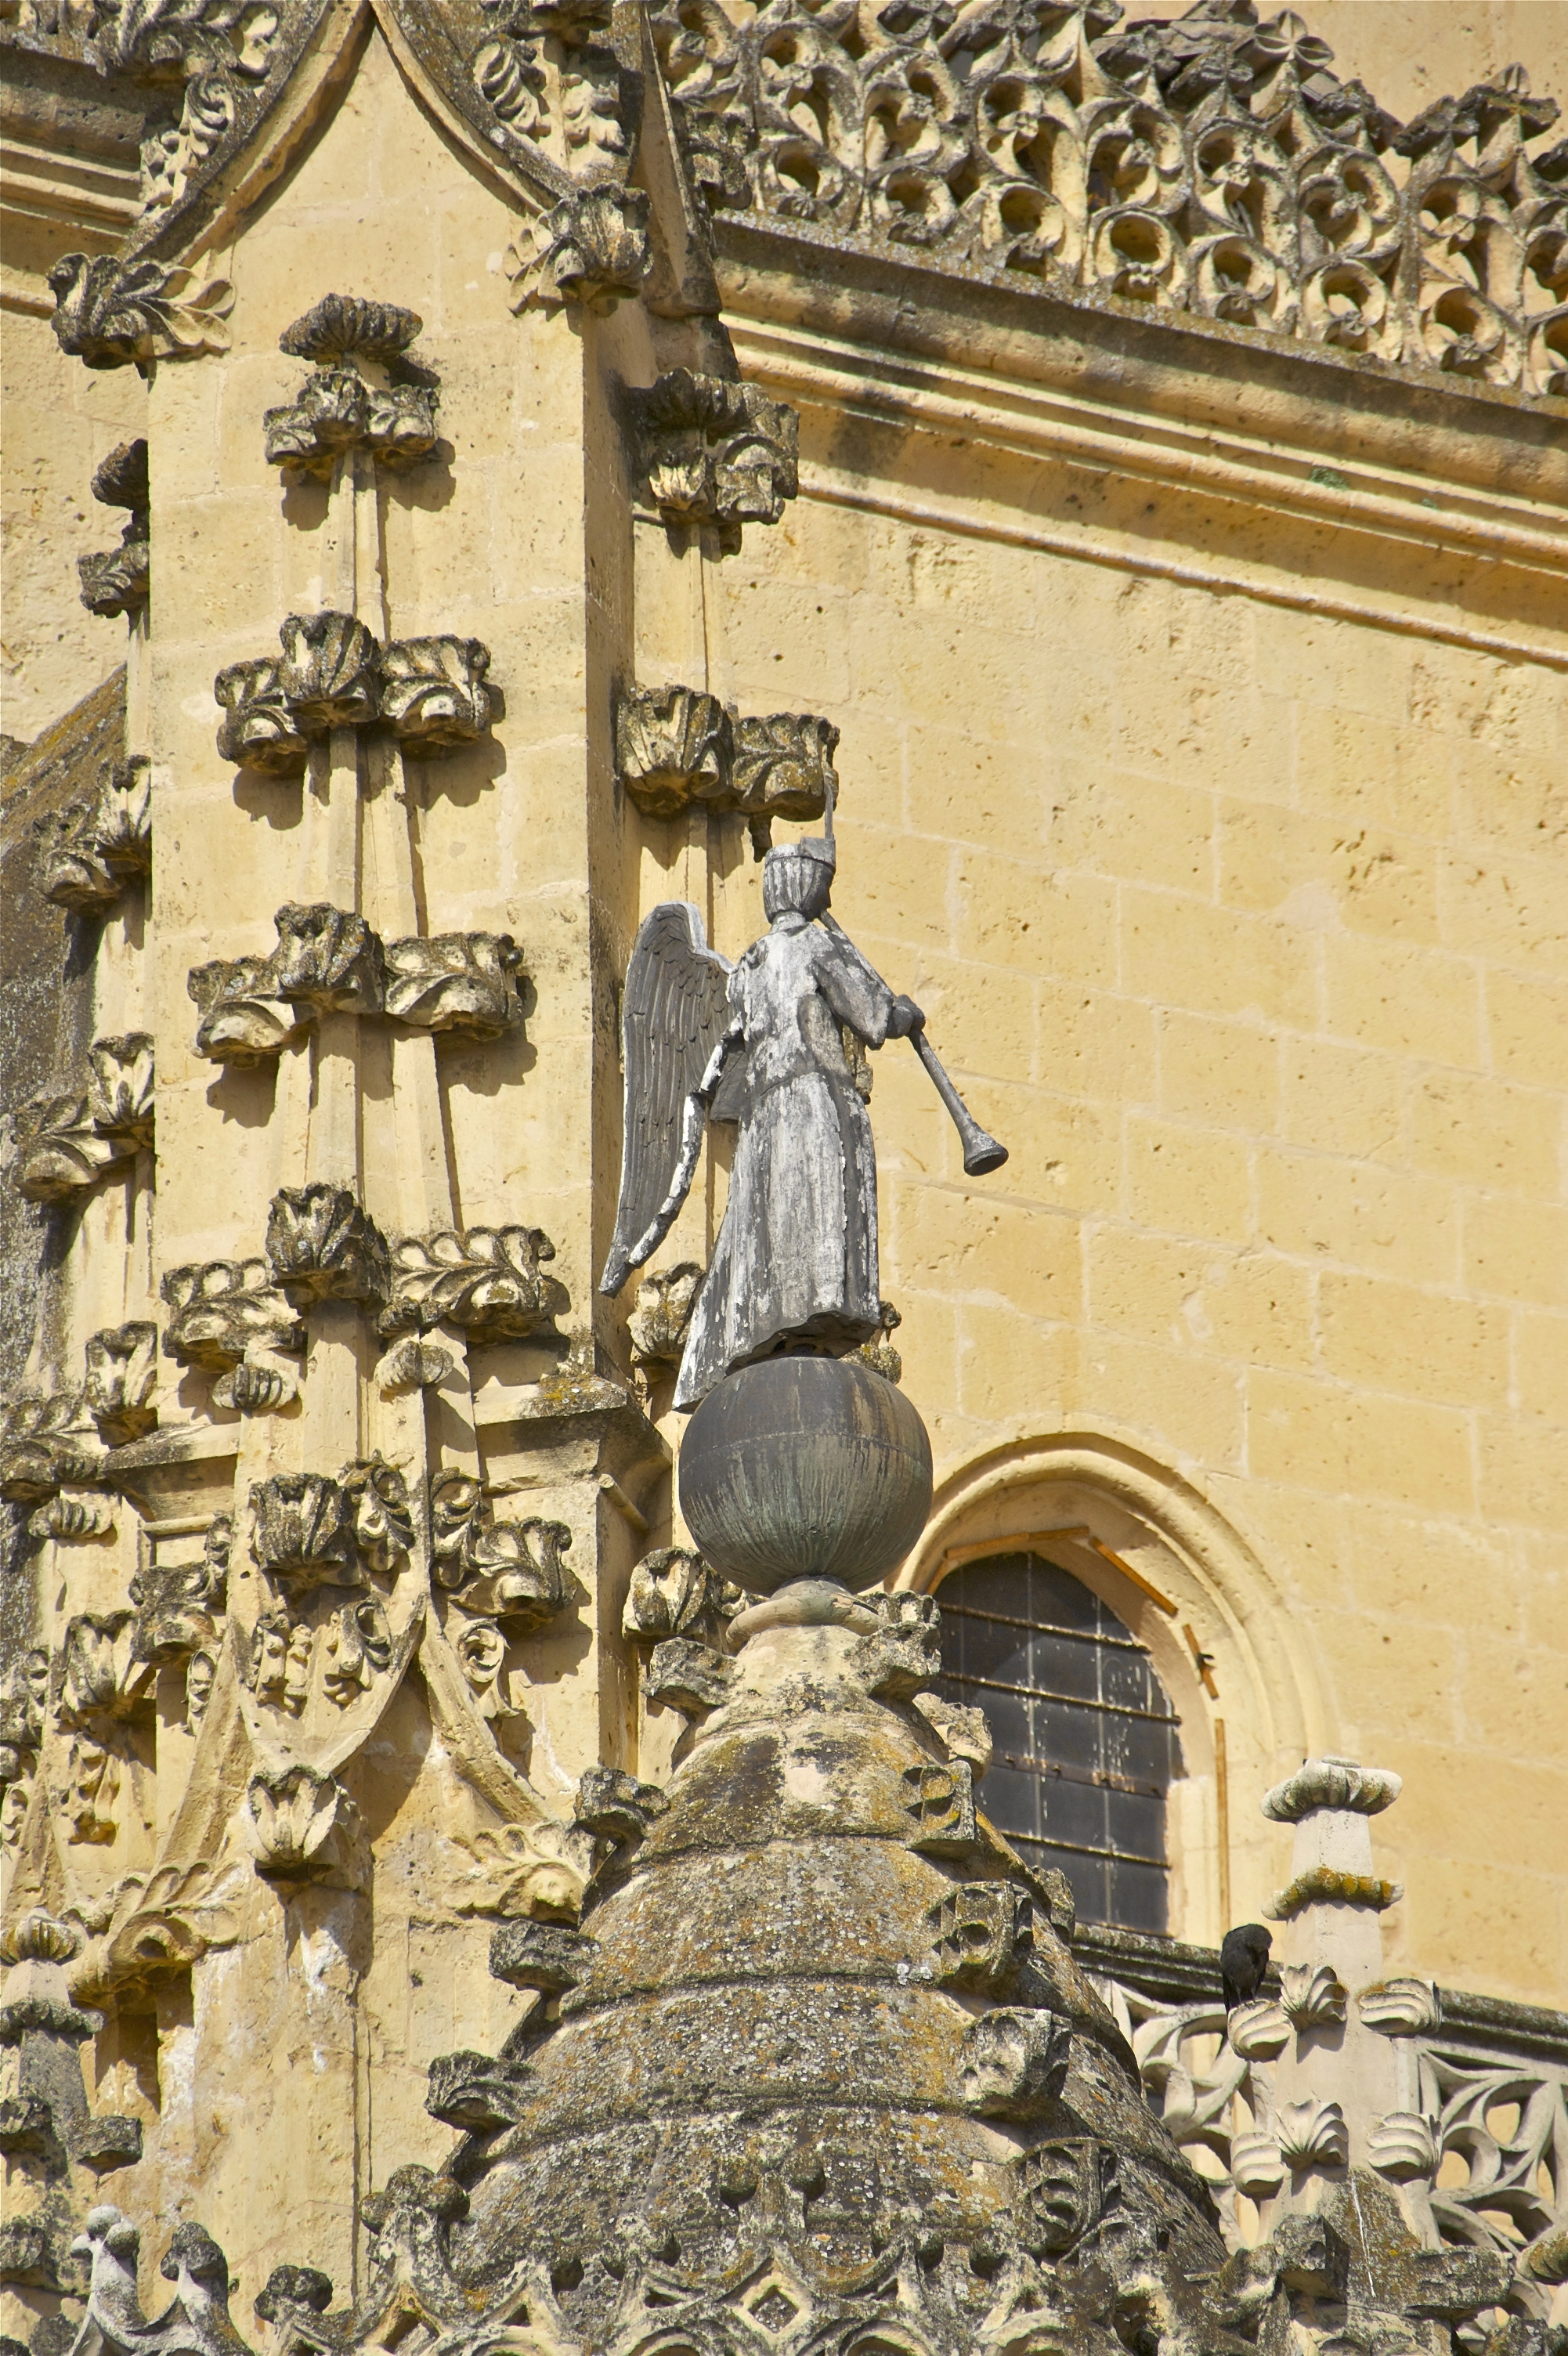 File:Lead angel playing trumpet cathedral Segovia Spain.jpg ...